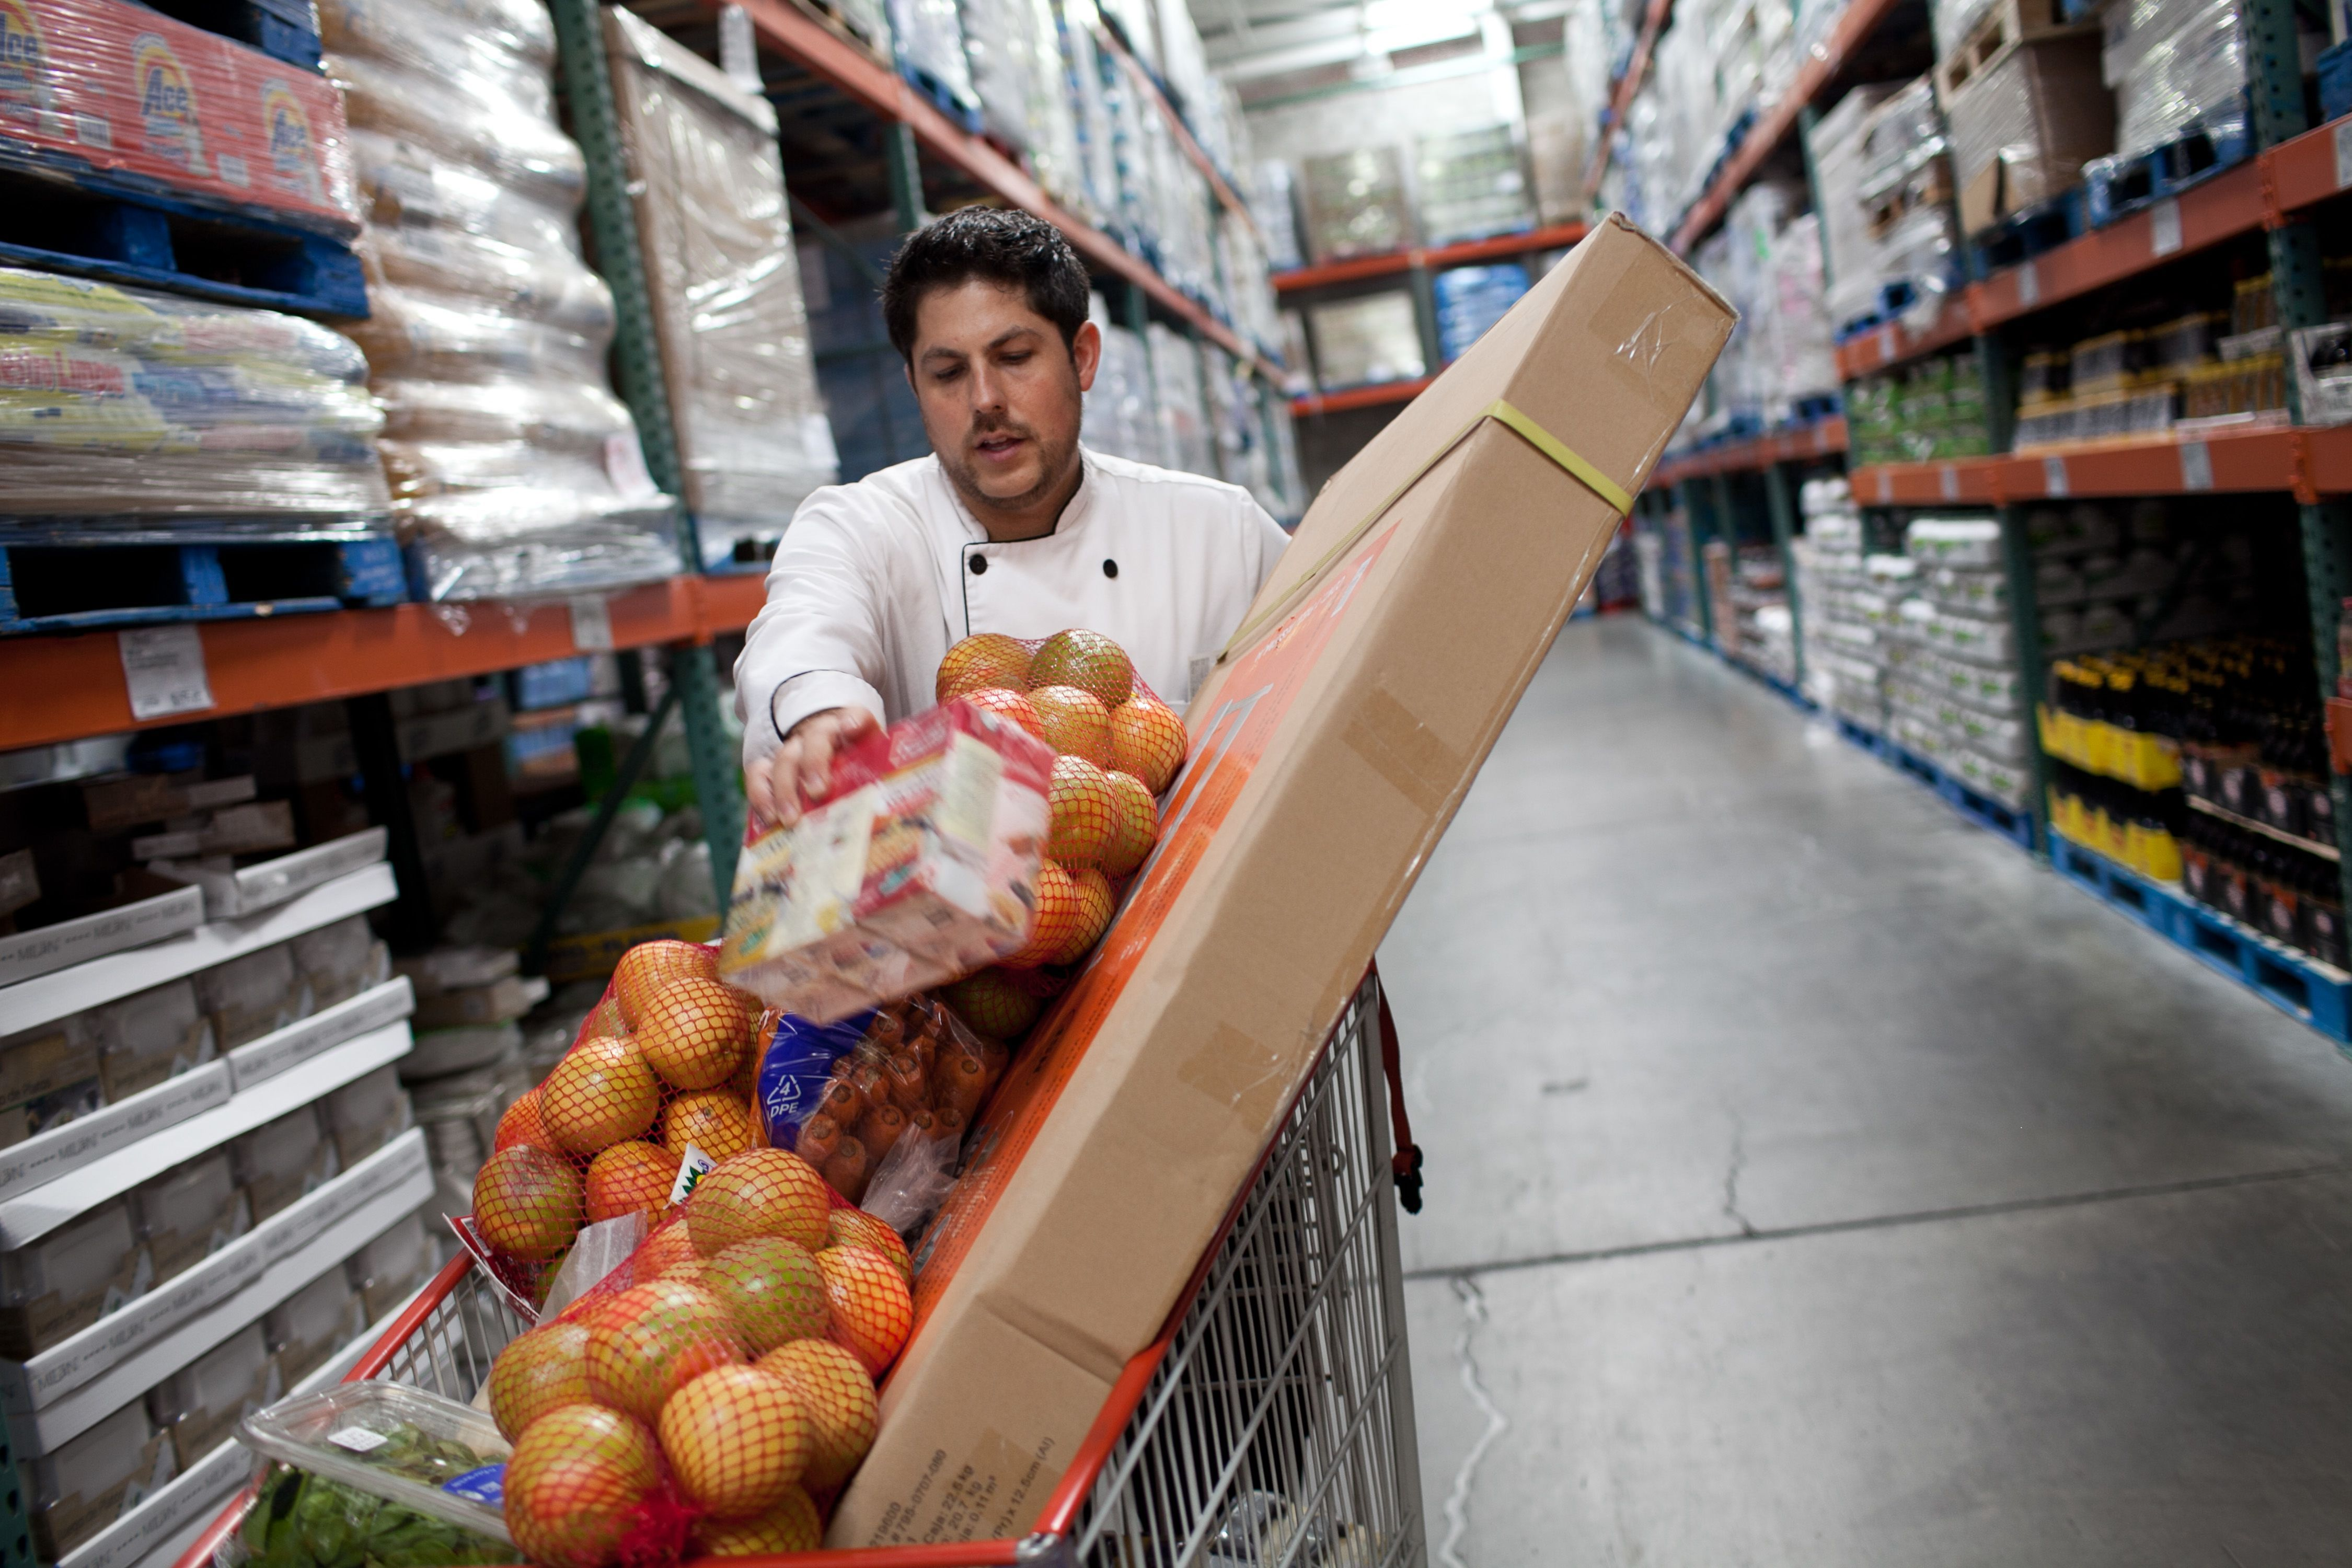 Don T Make These 7 Costly Mistakes When Shopping At Costco